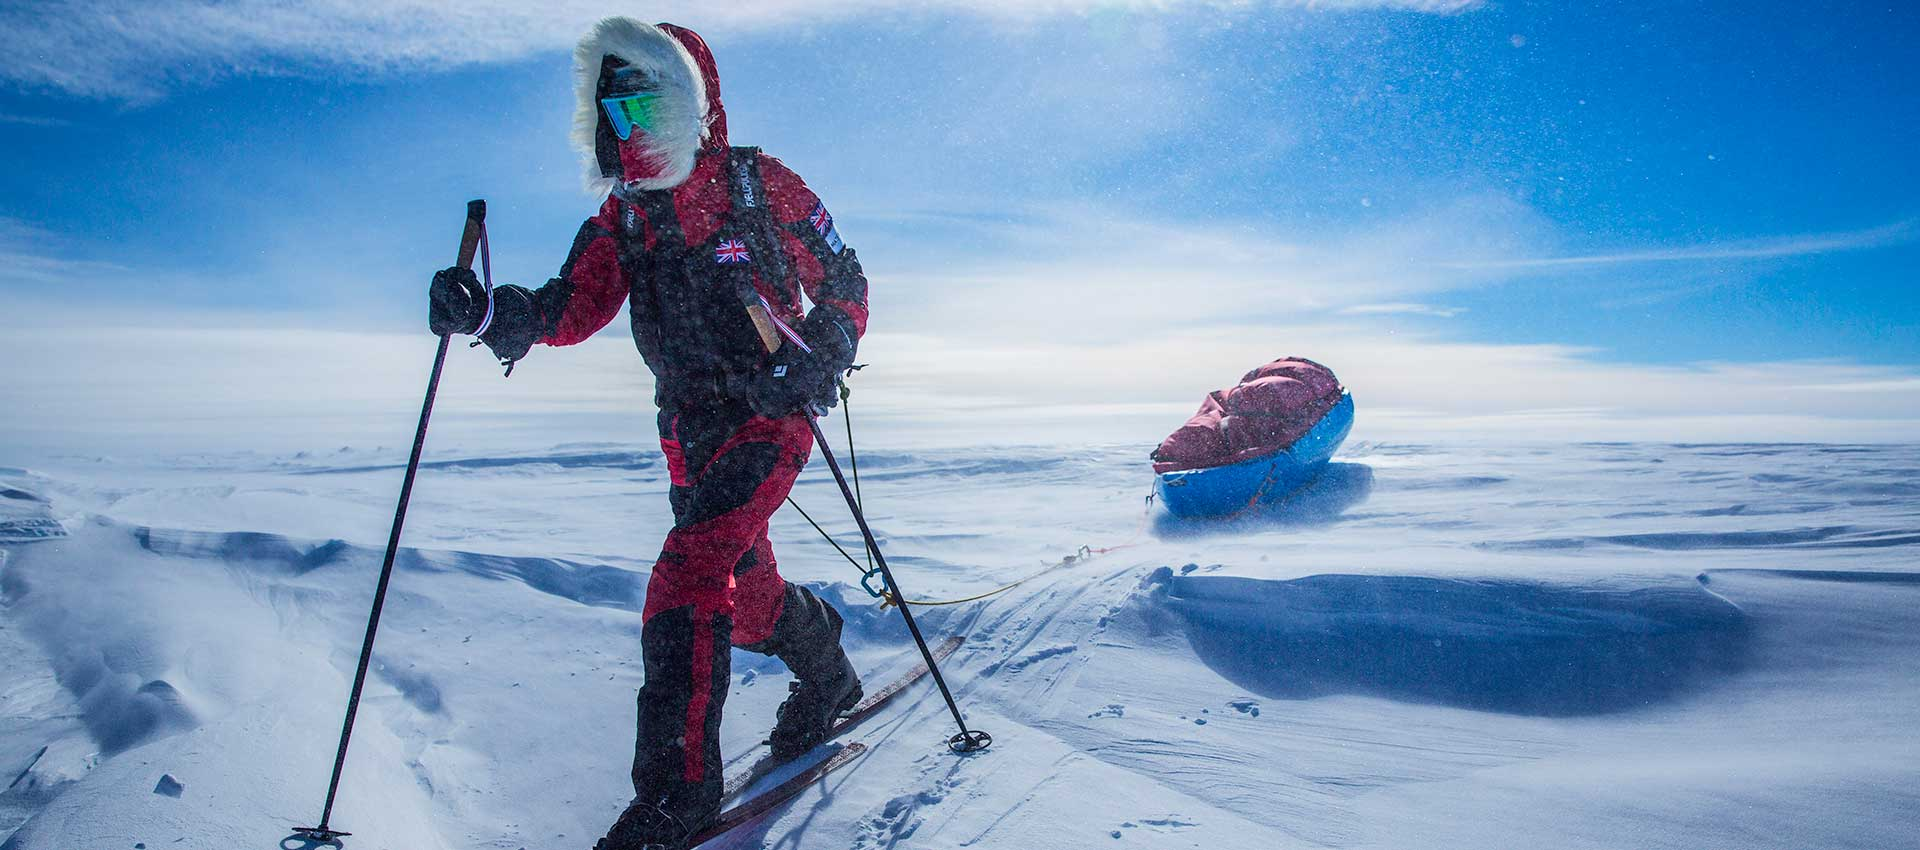 77188349d6a South Pole Full Ski Trip with Mountain Professionals